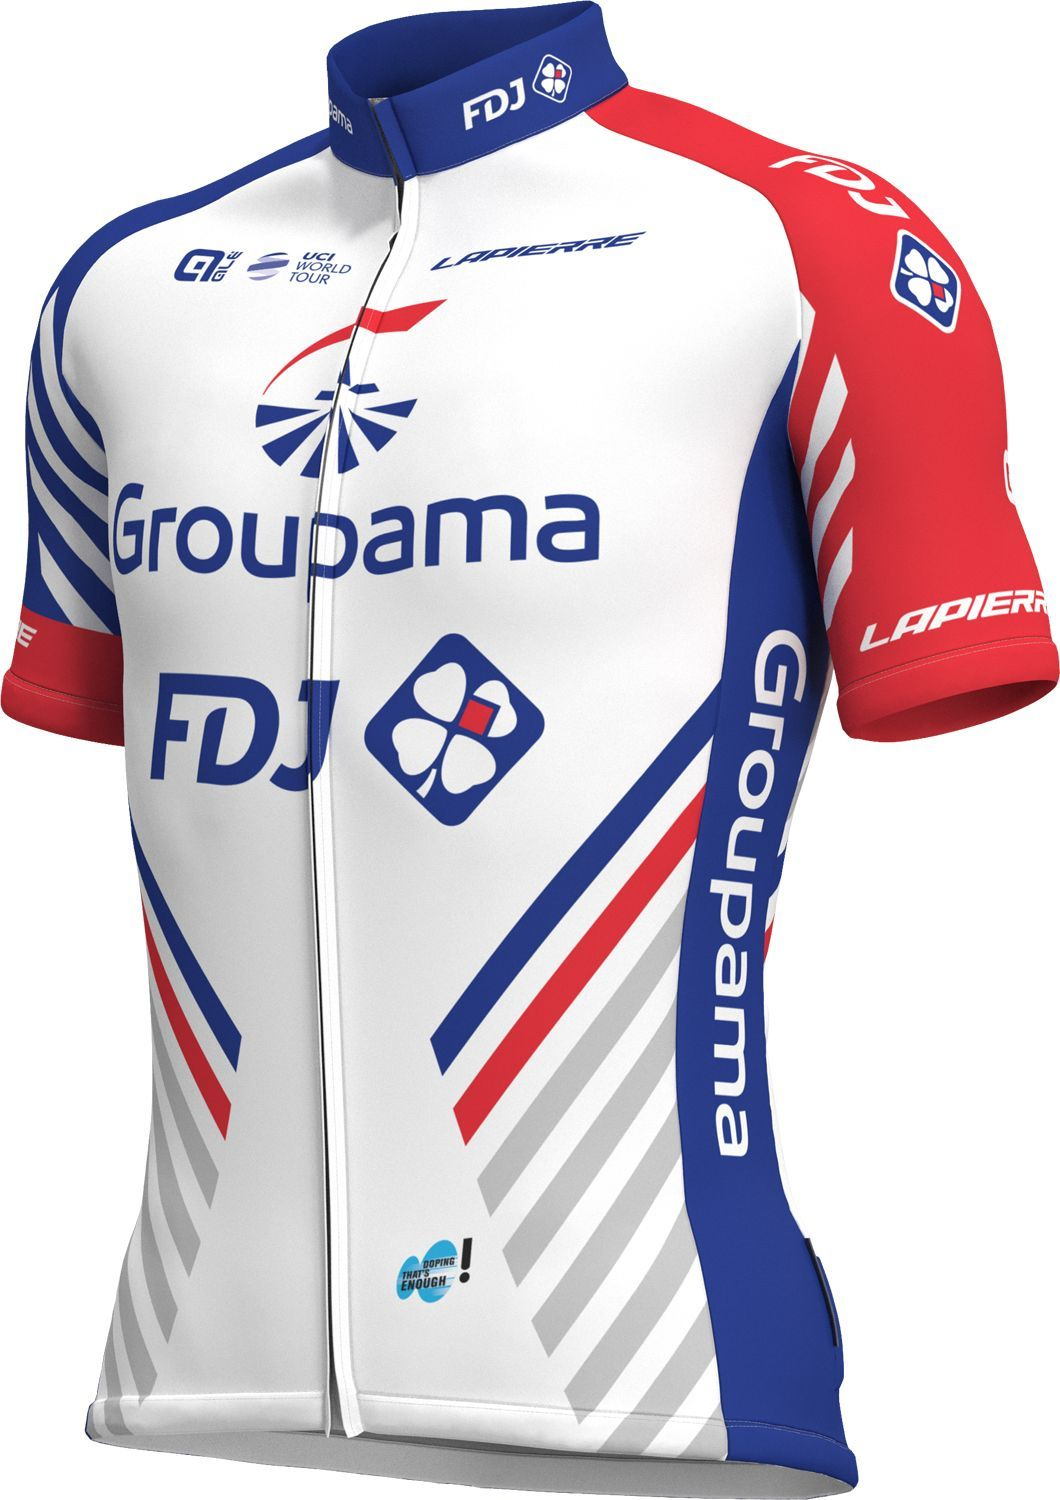 f3cc23ebe ALÉ GROUPAMA-FDJ 2018 short sleeve cycling jersey (long zip) - ALE  professional cycling team